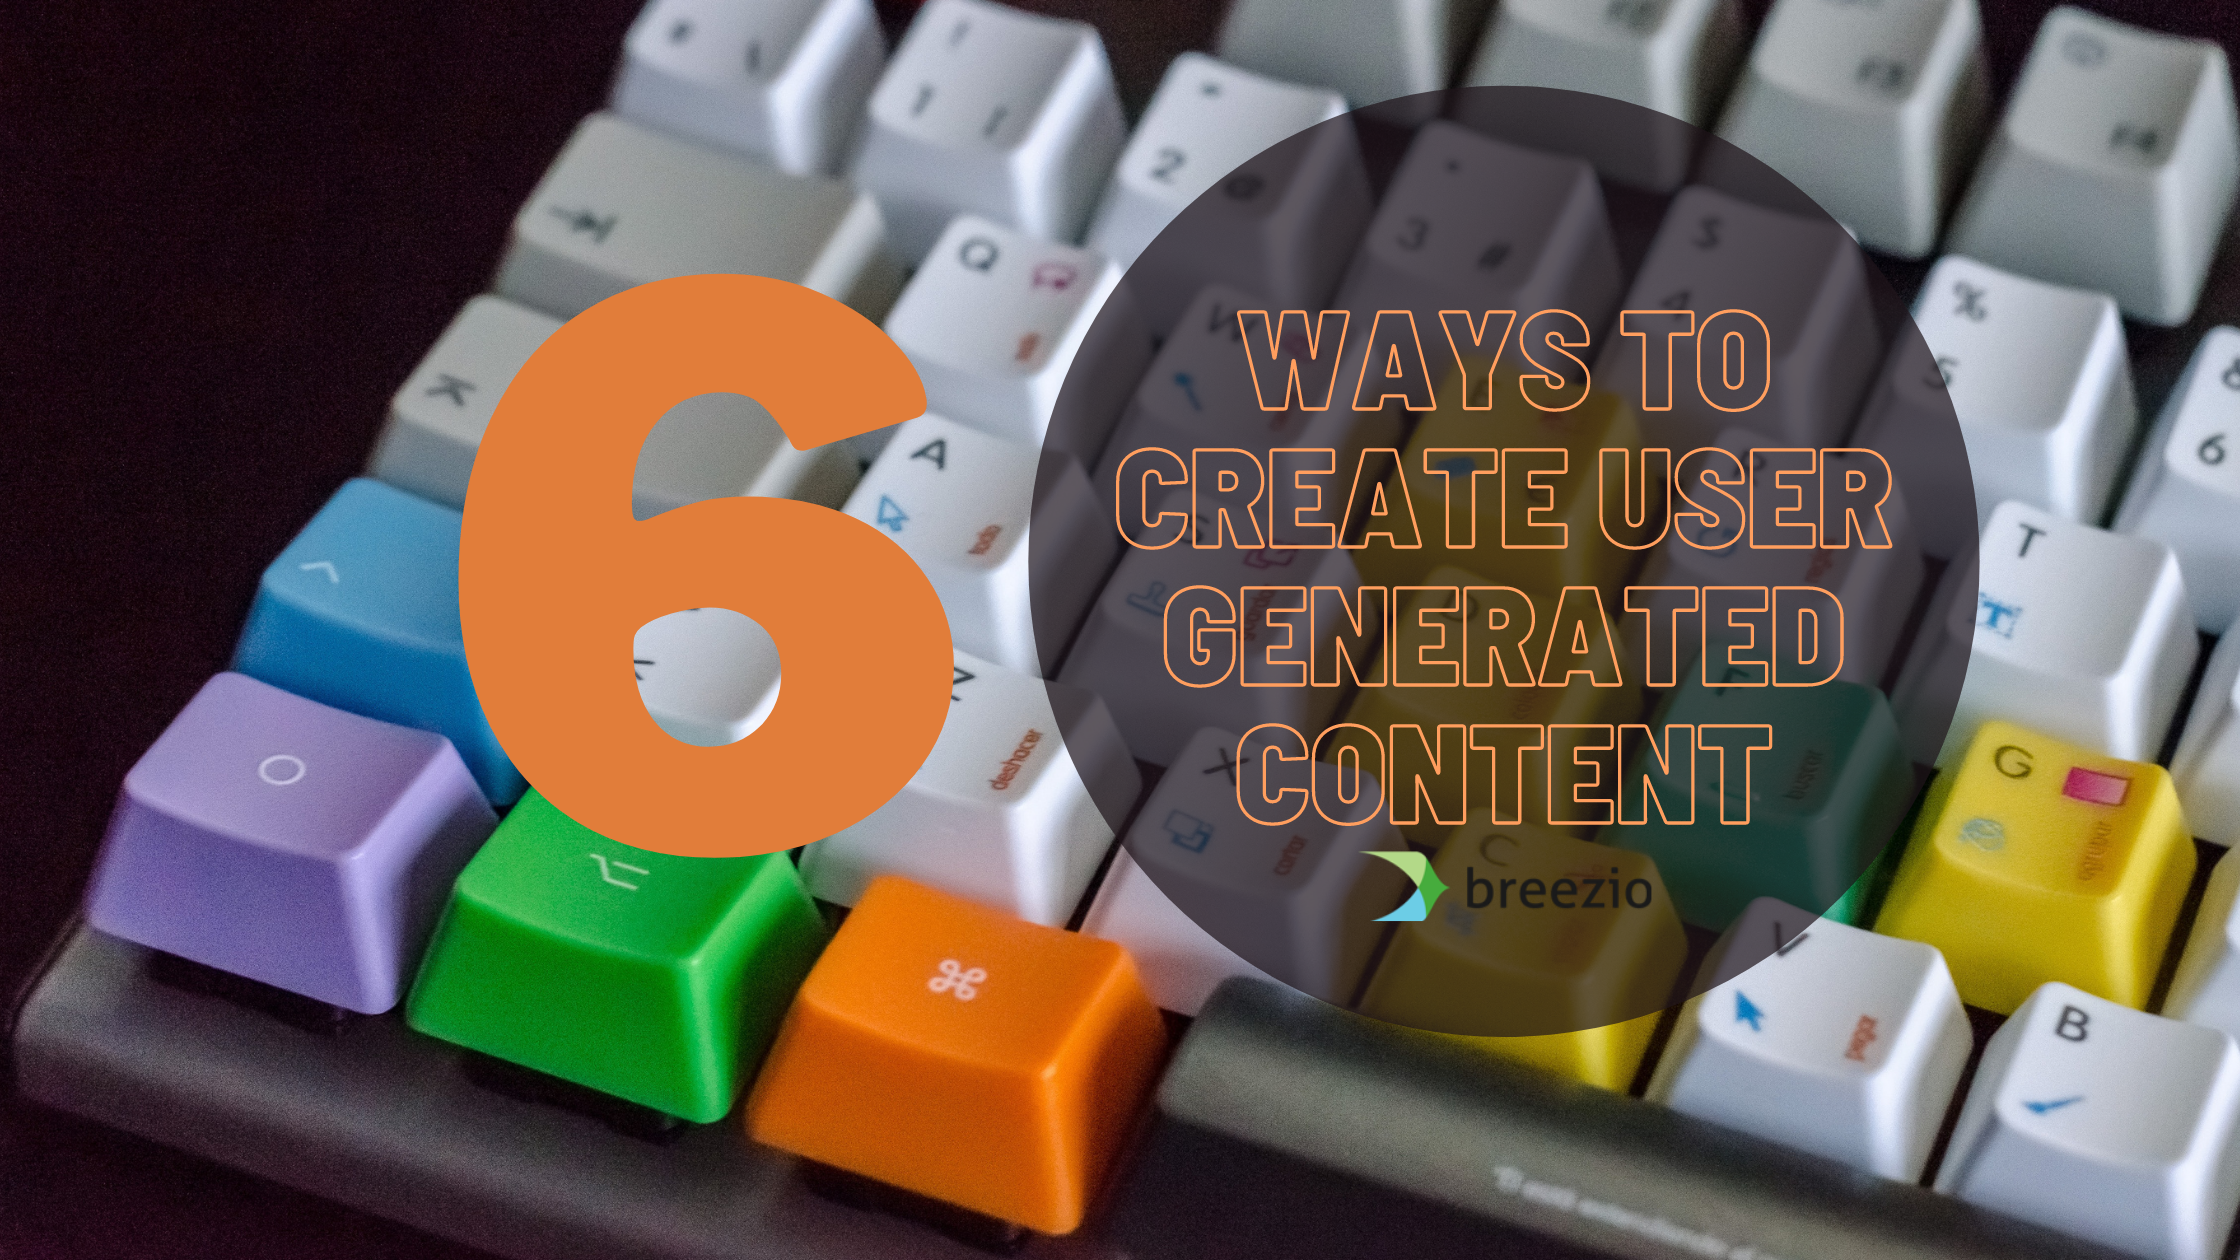 6 Ways to create user generated content